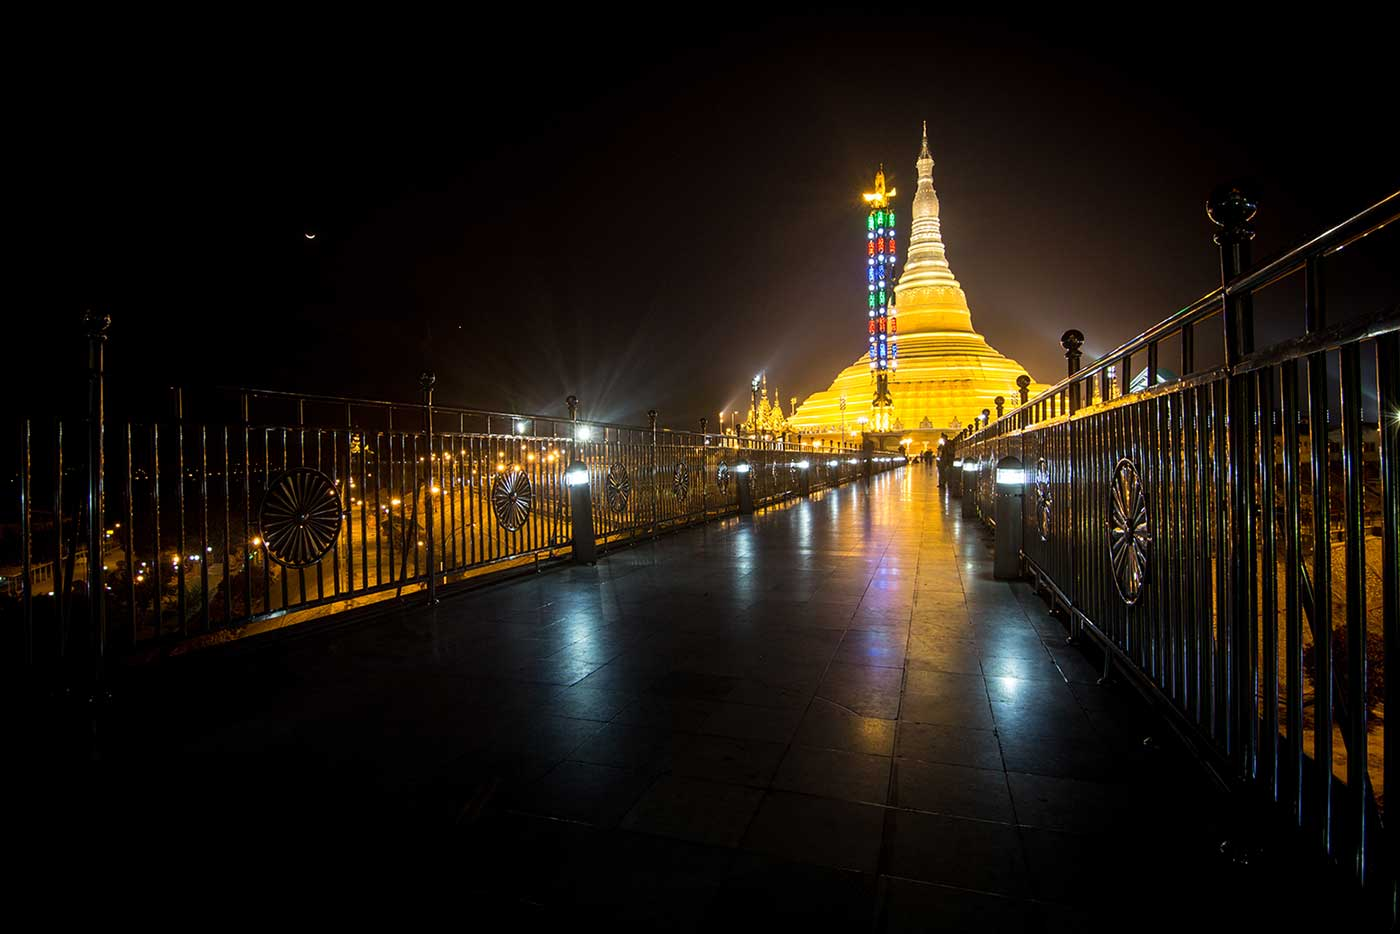 The Uppatasanti Pagoda is one of the most important landmarks in Naypyidaw. It stands 99m tall, and has a reliquary said to contain a tooth of the Buddha.